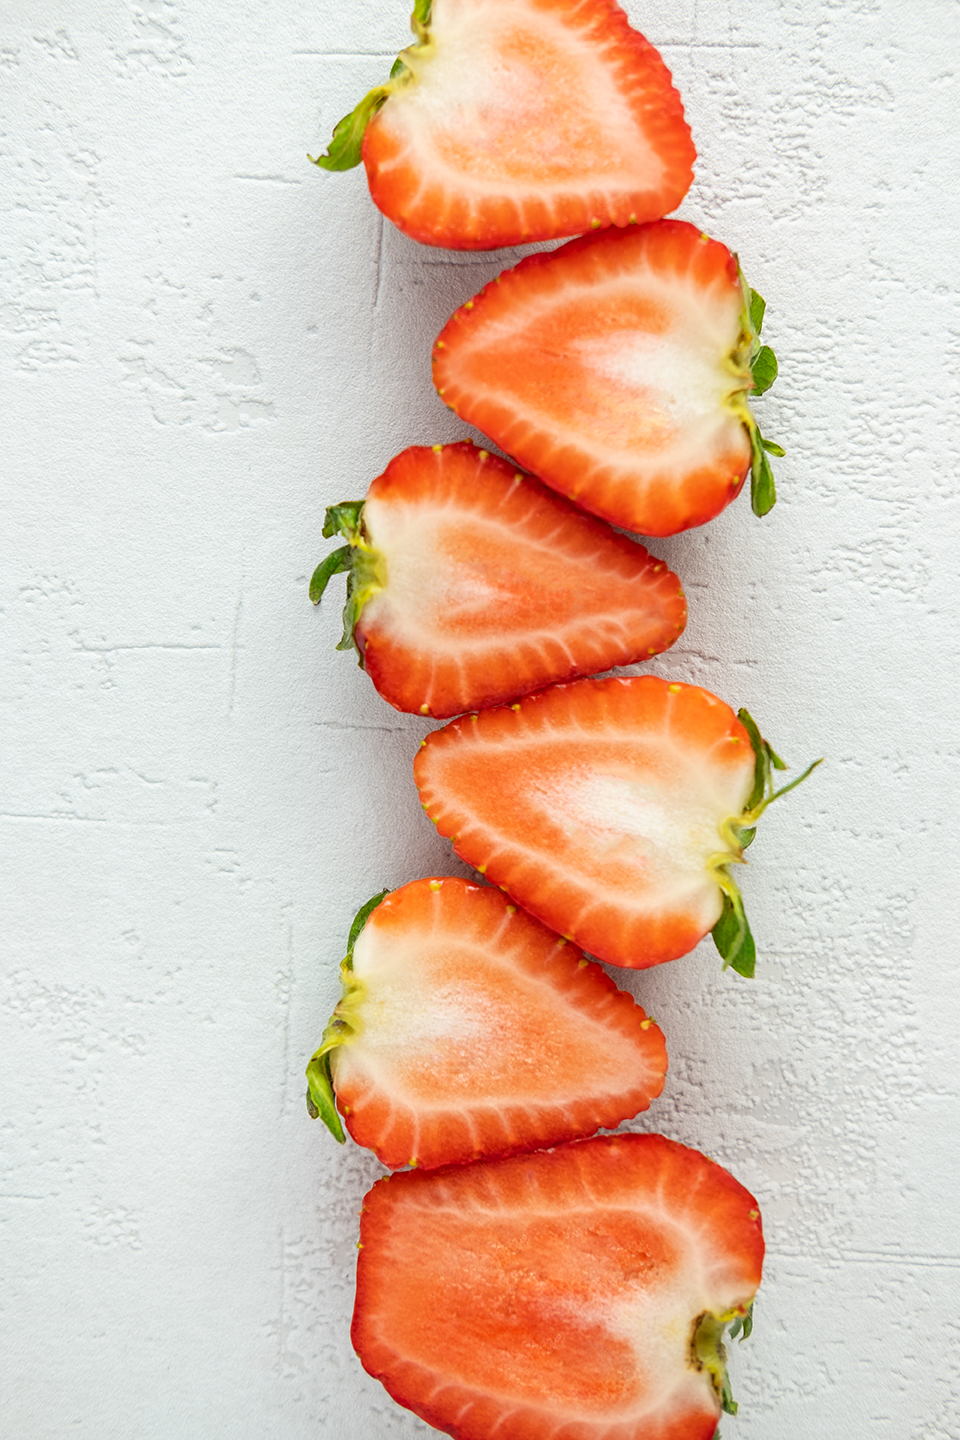 Six strawberries sliced in half on a white background.